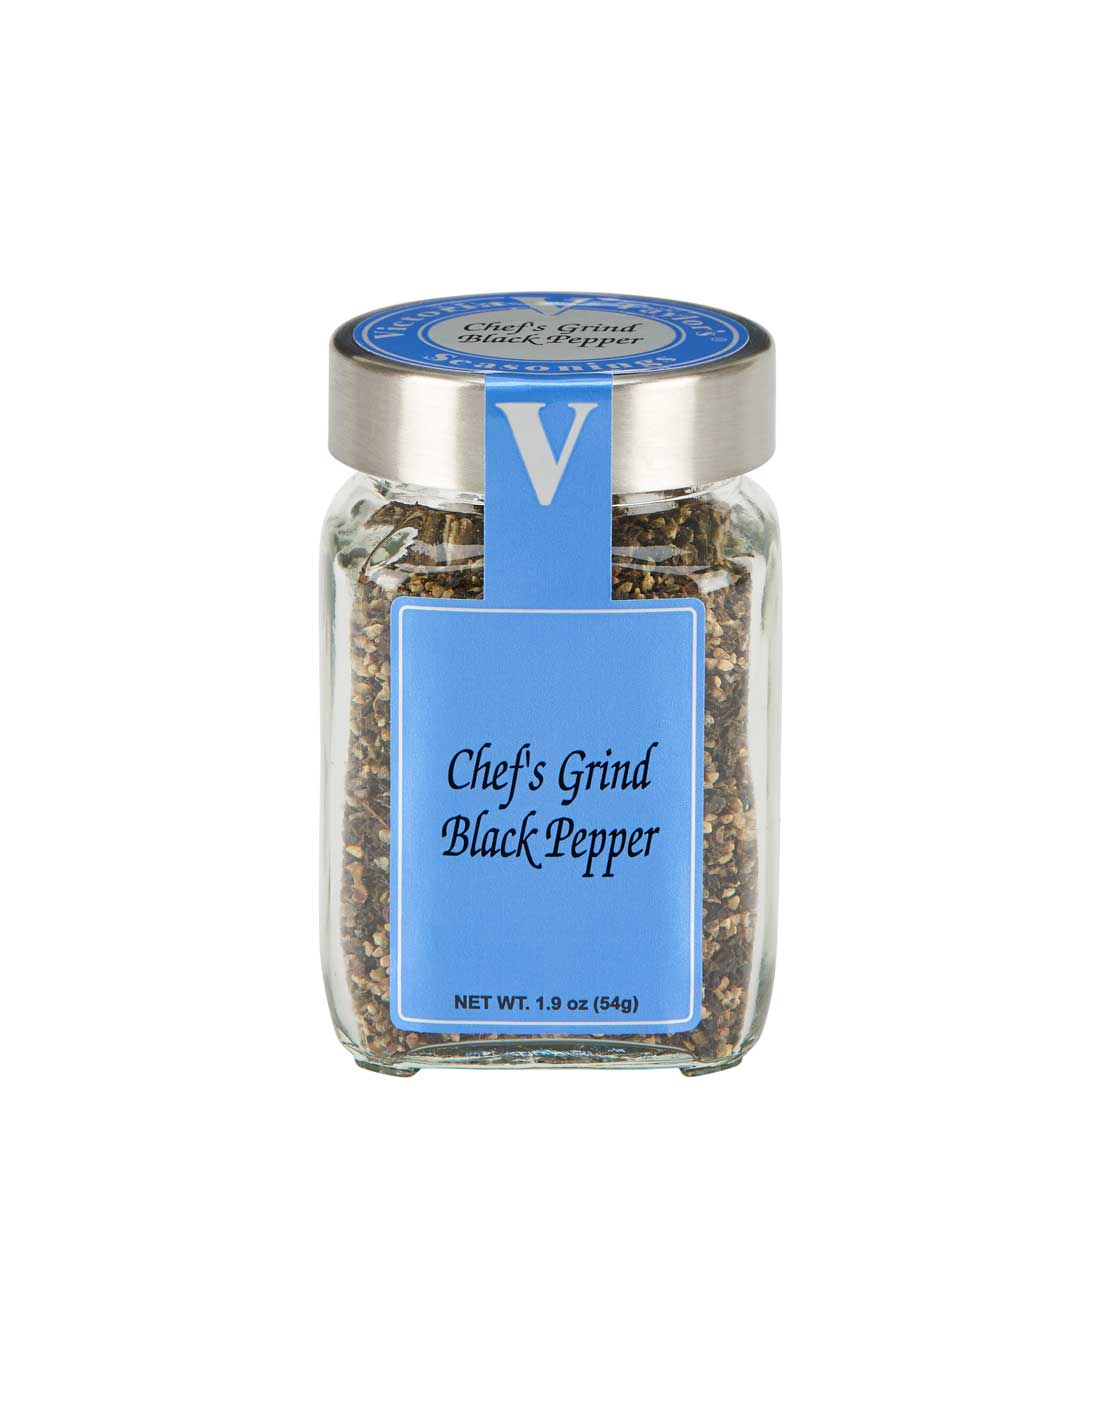 chef grind black pepper salt free victoria taylor